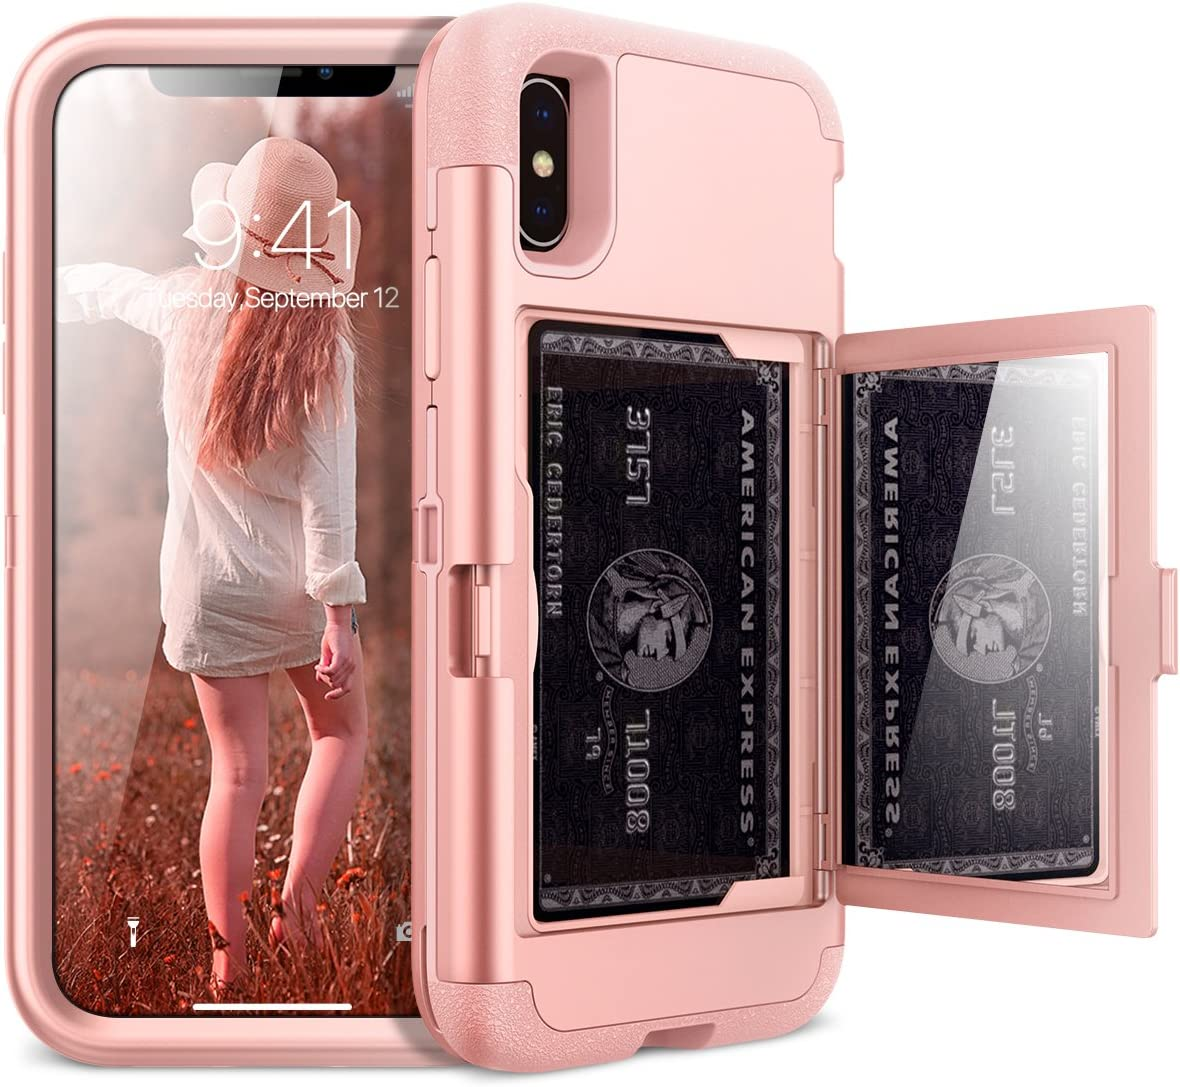 iPhone X Wallet Case - WeLoveCase iPhone Xs Case Defender Wallet Design with Card Holder Hidden Mirror 3 in 1 Heavy Duty Shockproof Armor Full-Body Protective Case for iPhone X, iPhone Xs- Rose Gold